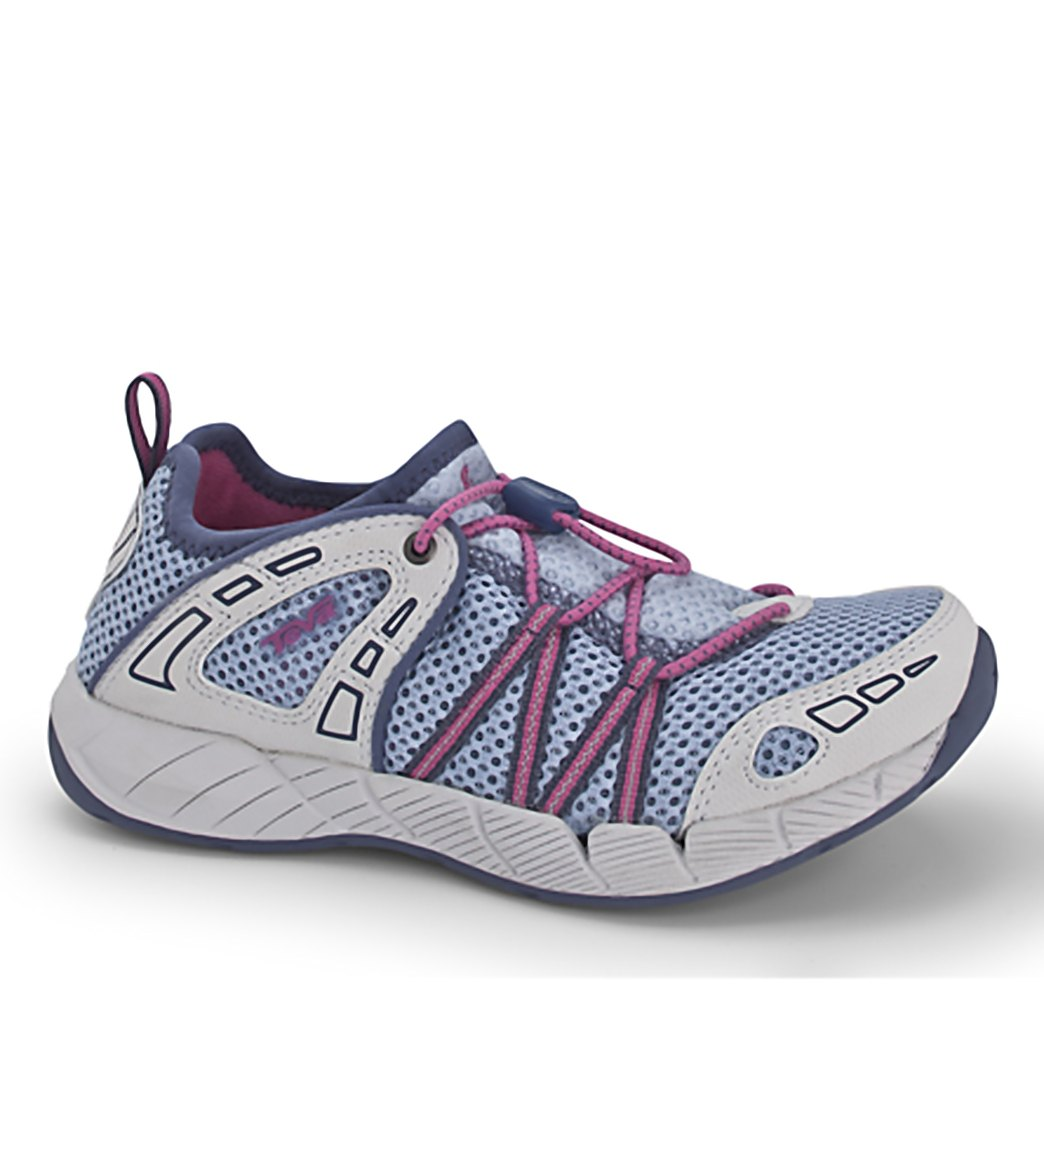 a9881fe5c94f Teva Kids  Churn Water Shoes at SwimOutlet.com - Free Shipping